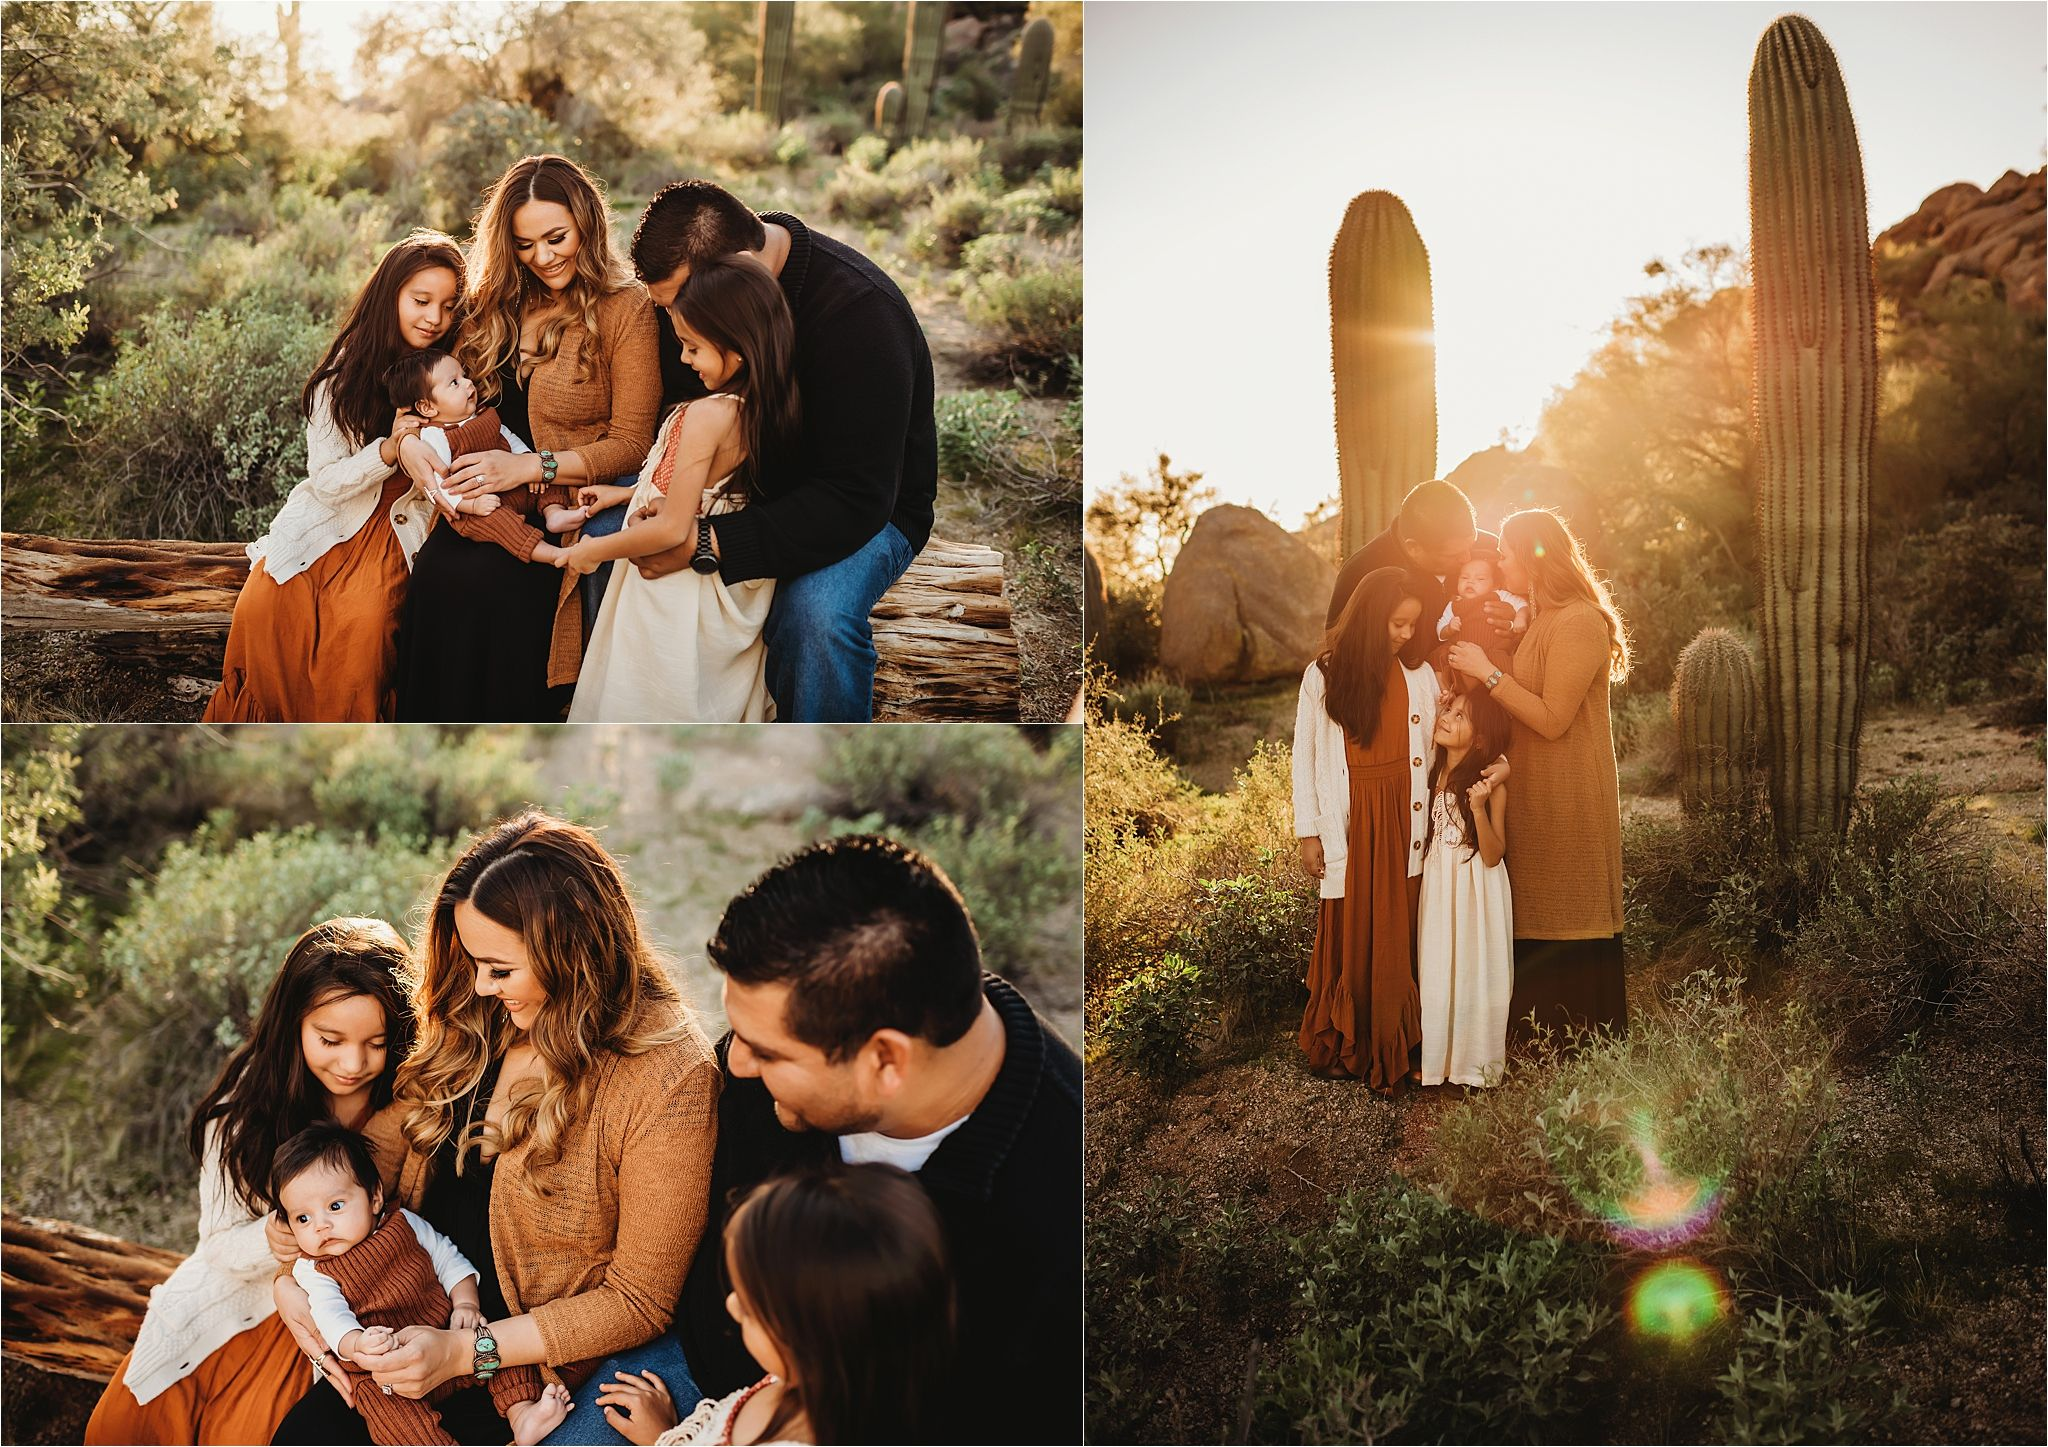 sunset-family-session-Sierra-Vista-Family-Photographer-in-Tucson_1655.jpg